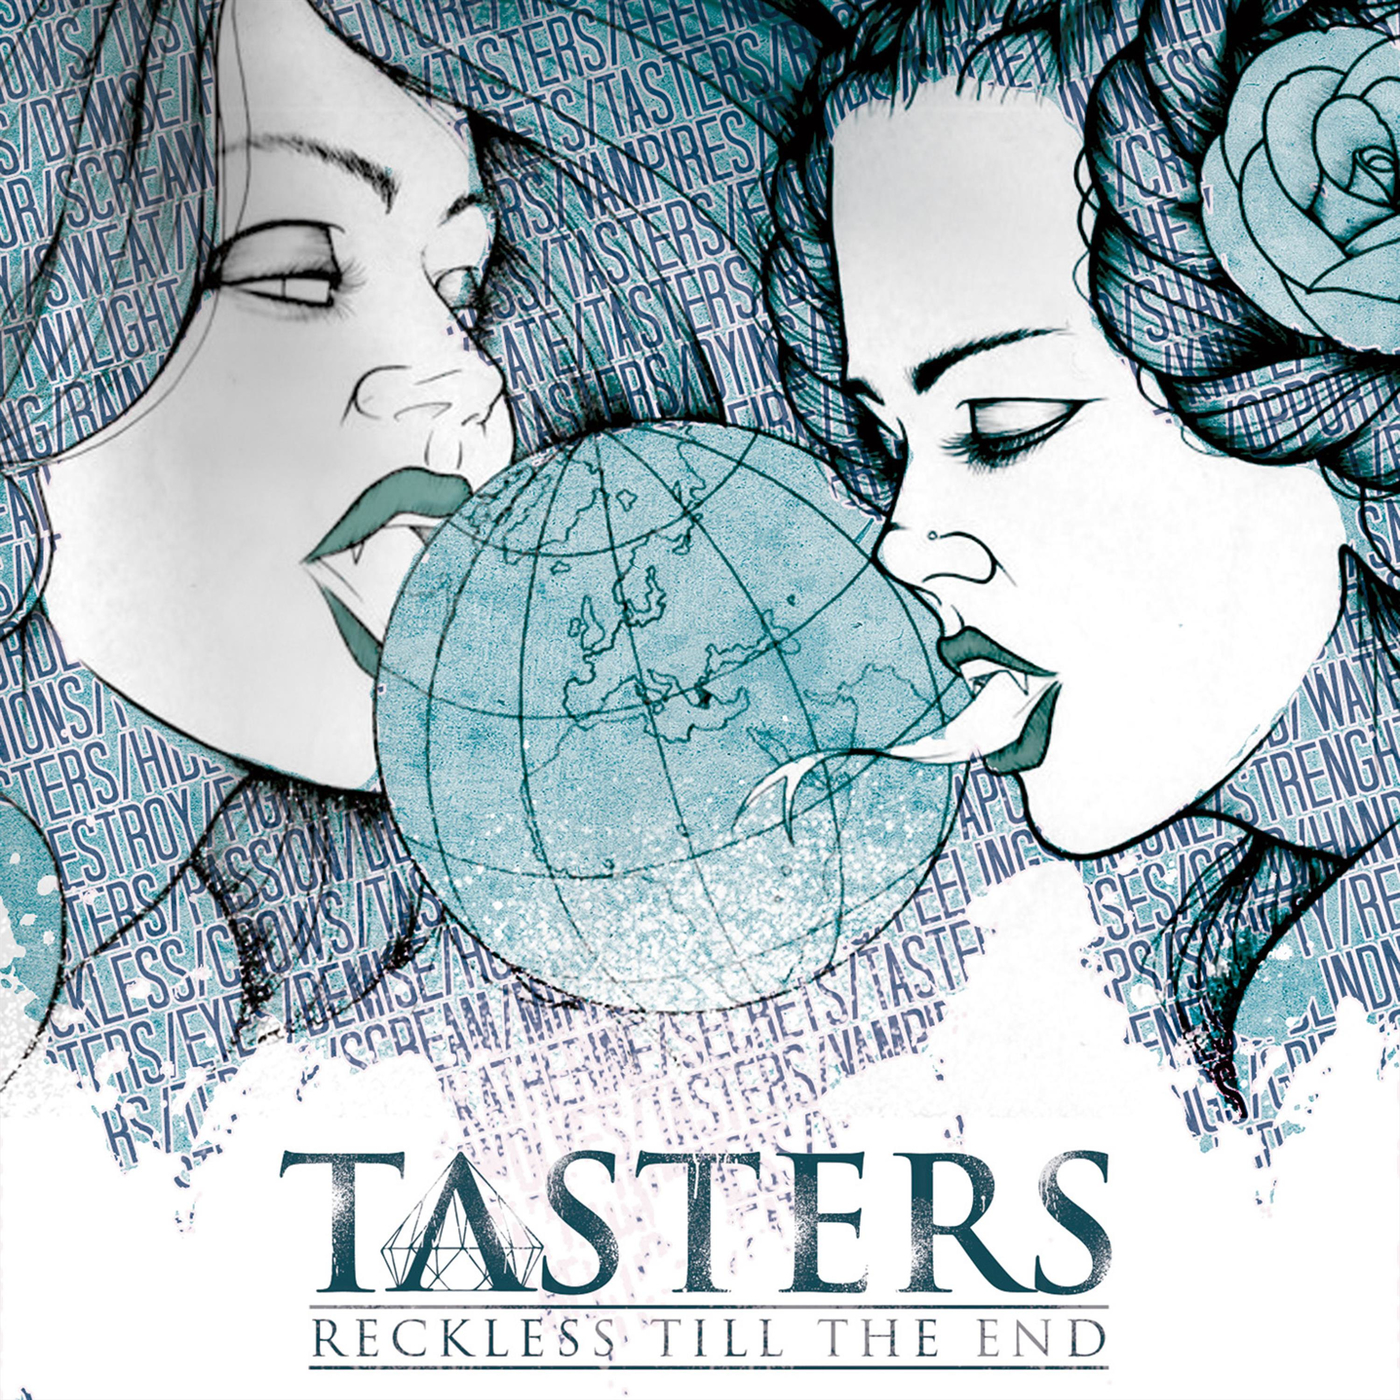 Tasters - Reckless 'Till the End (2011)